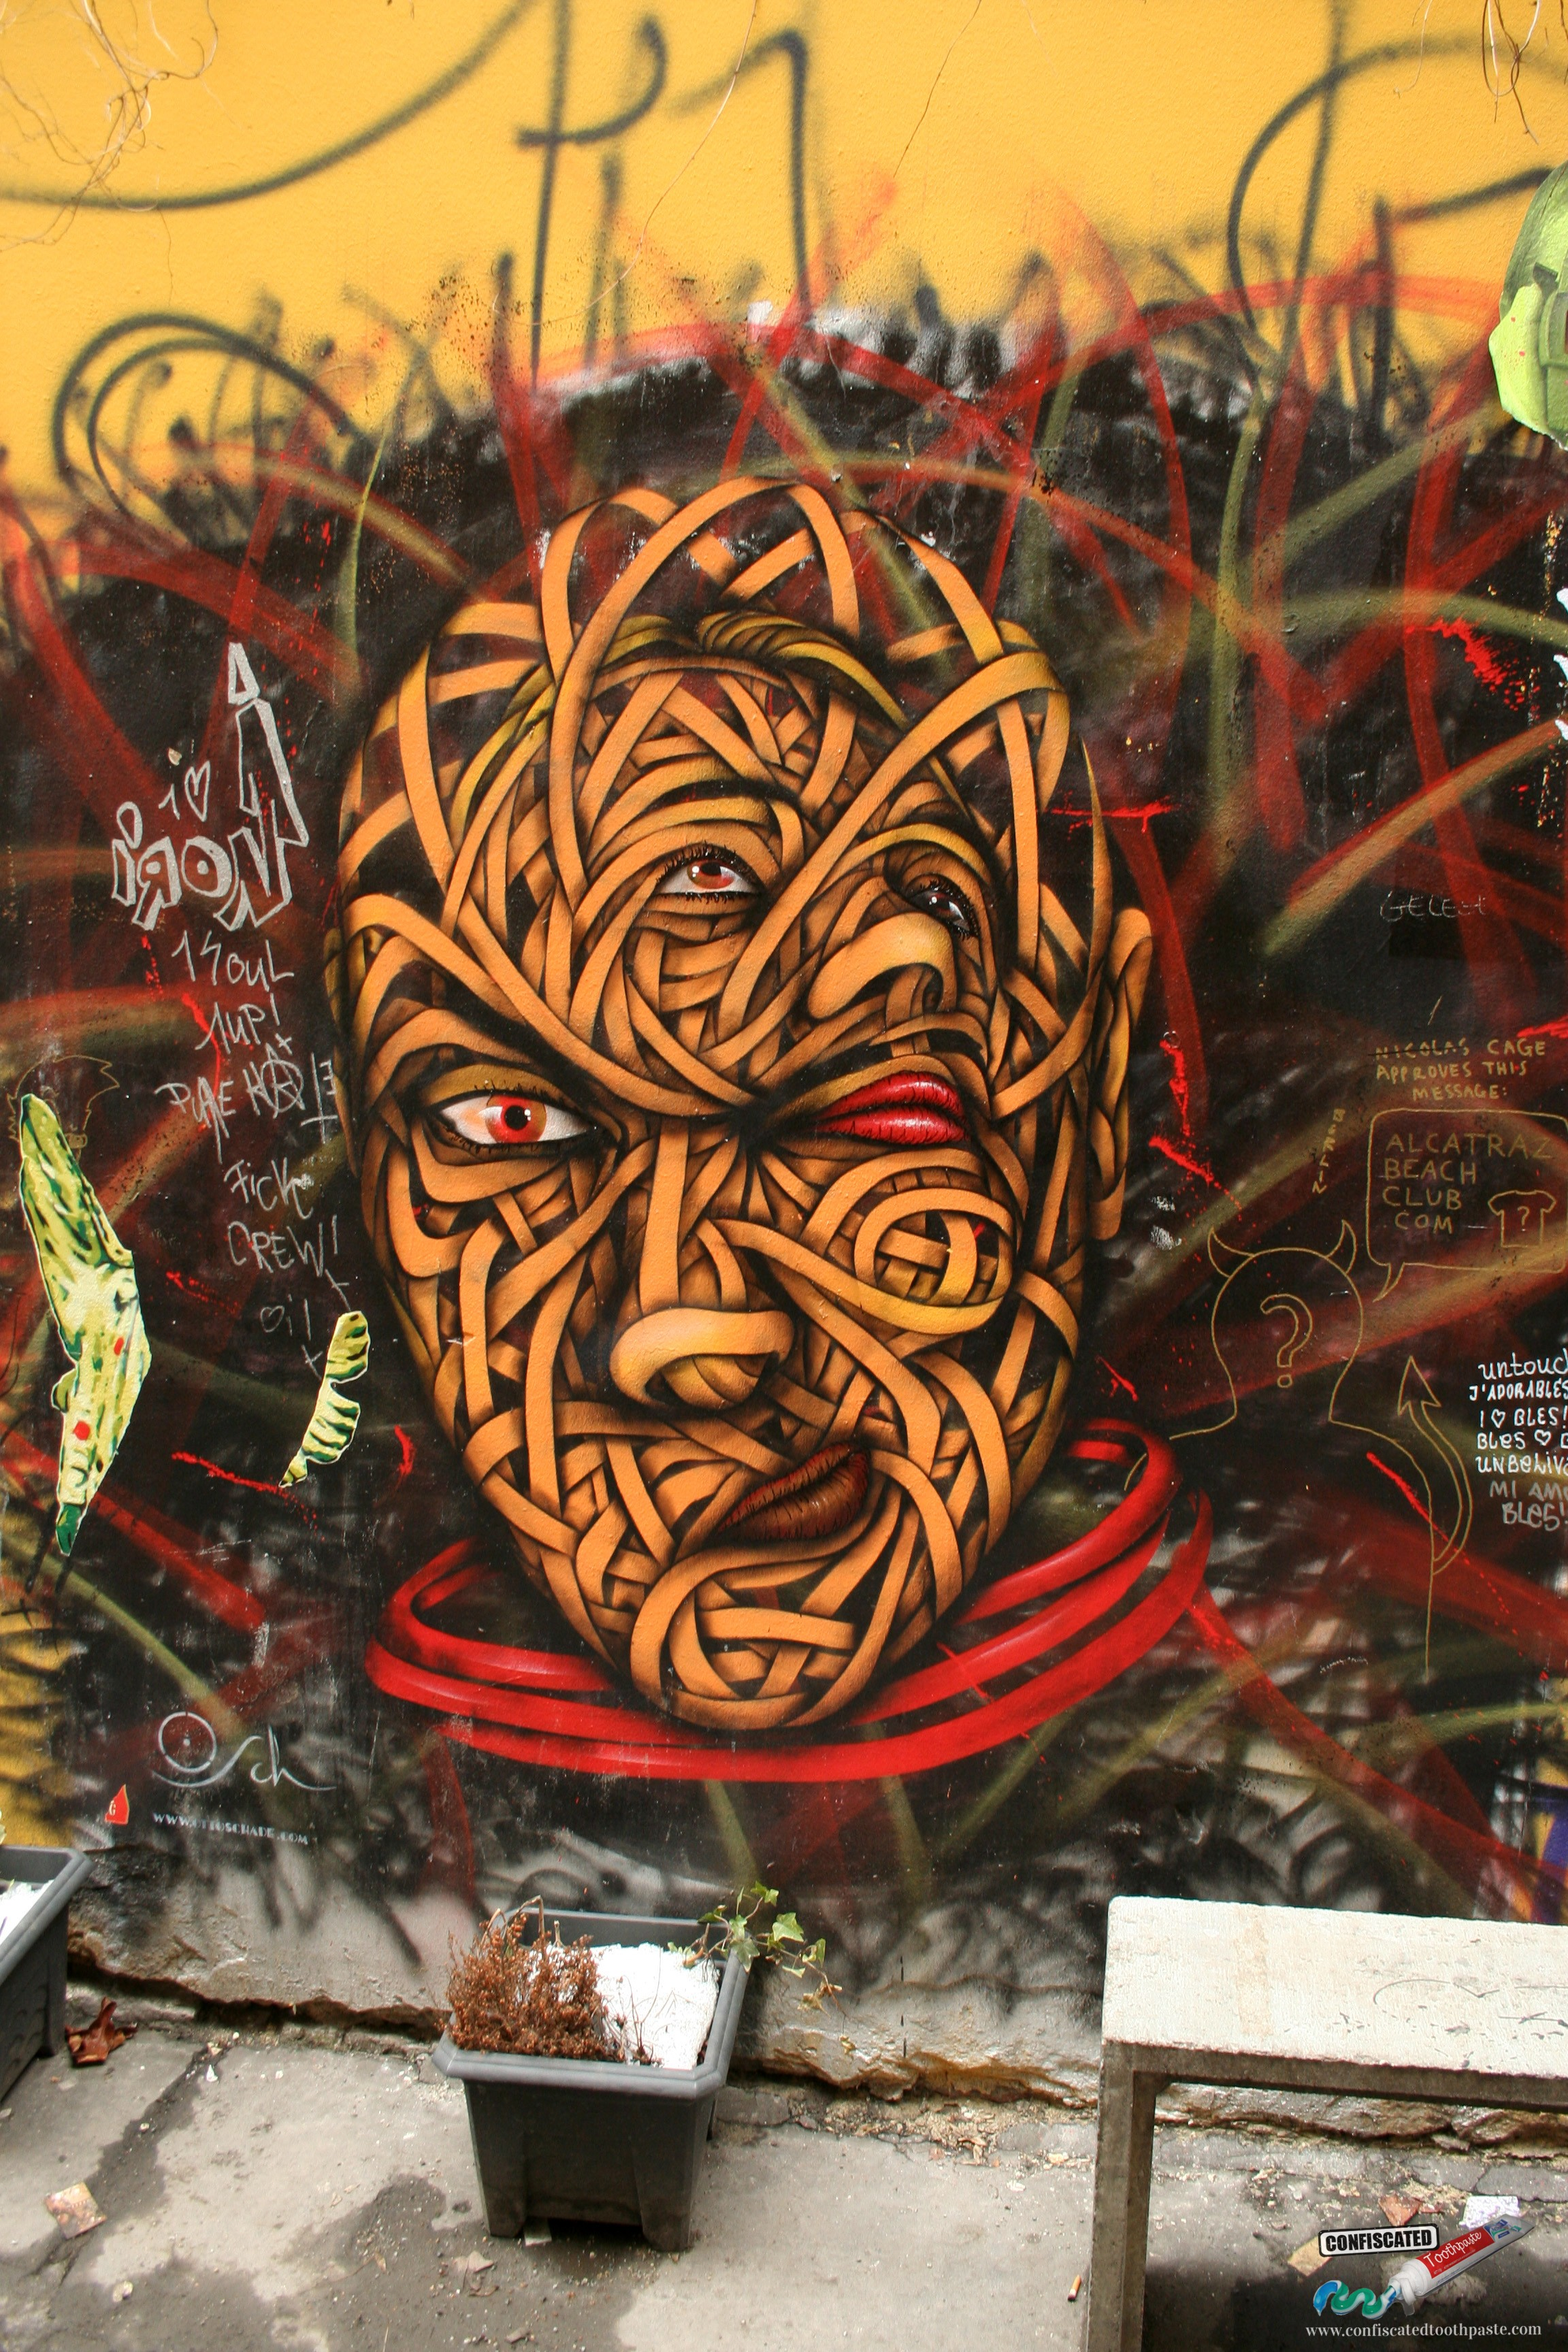 Notable Berlin Street Art (including the East Side Gallery)